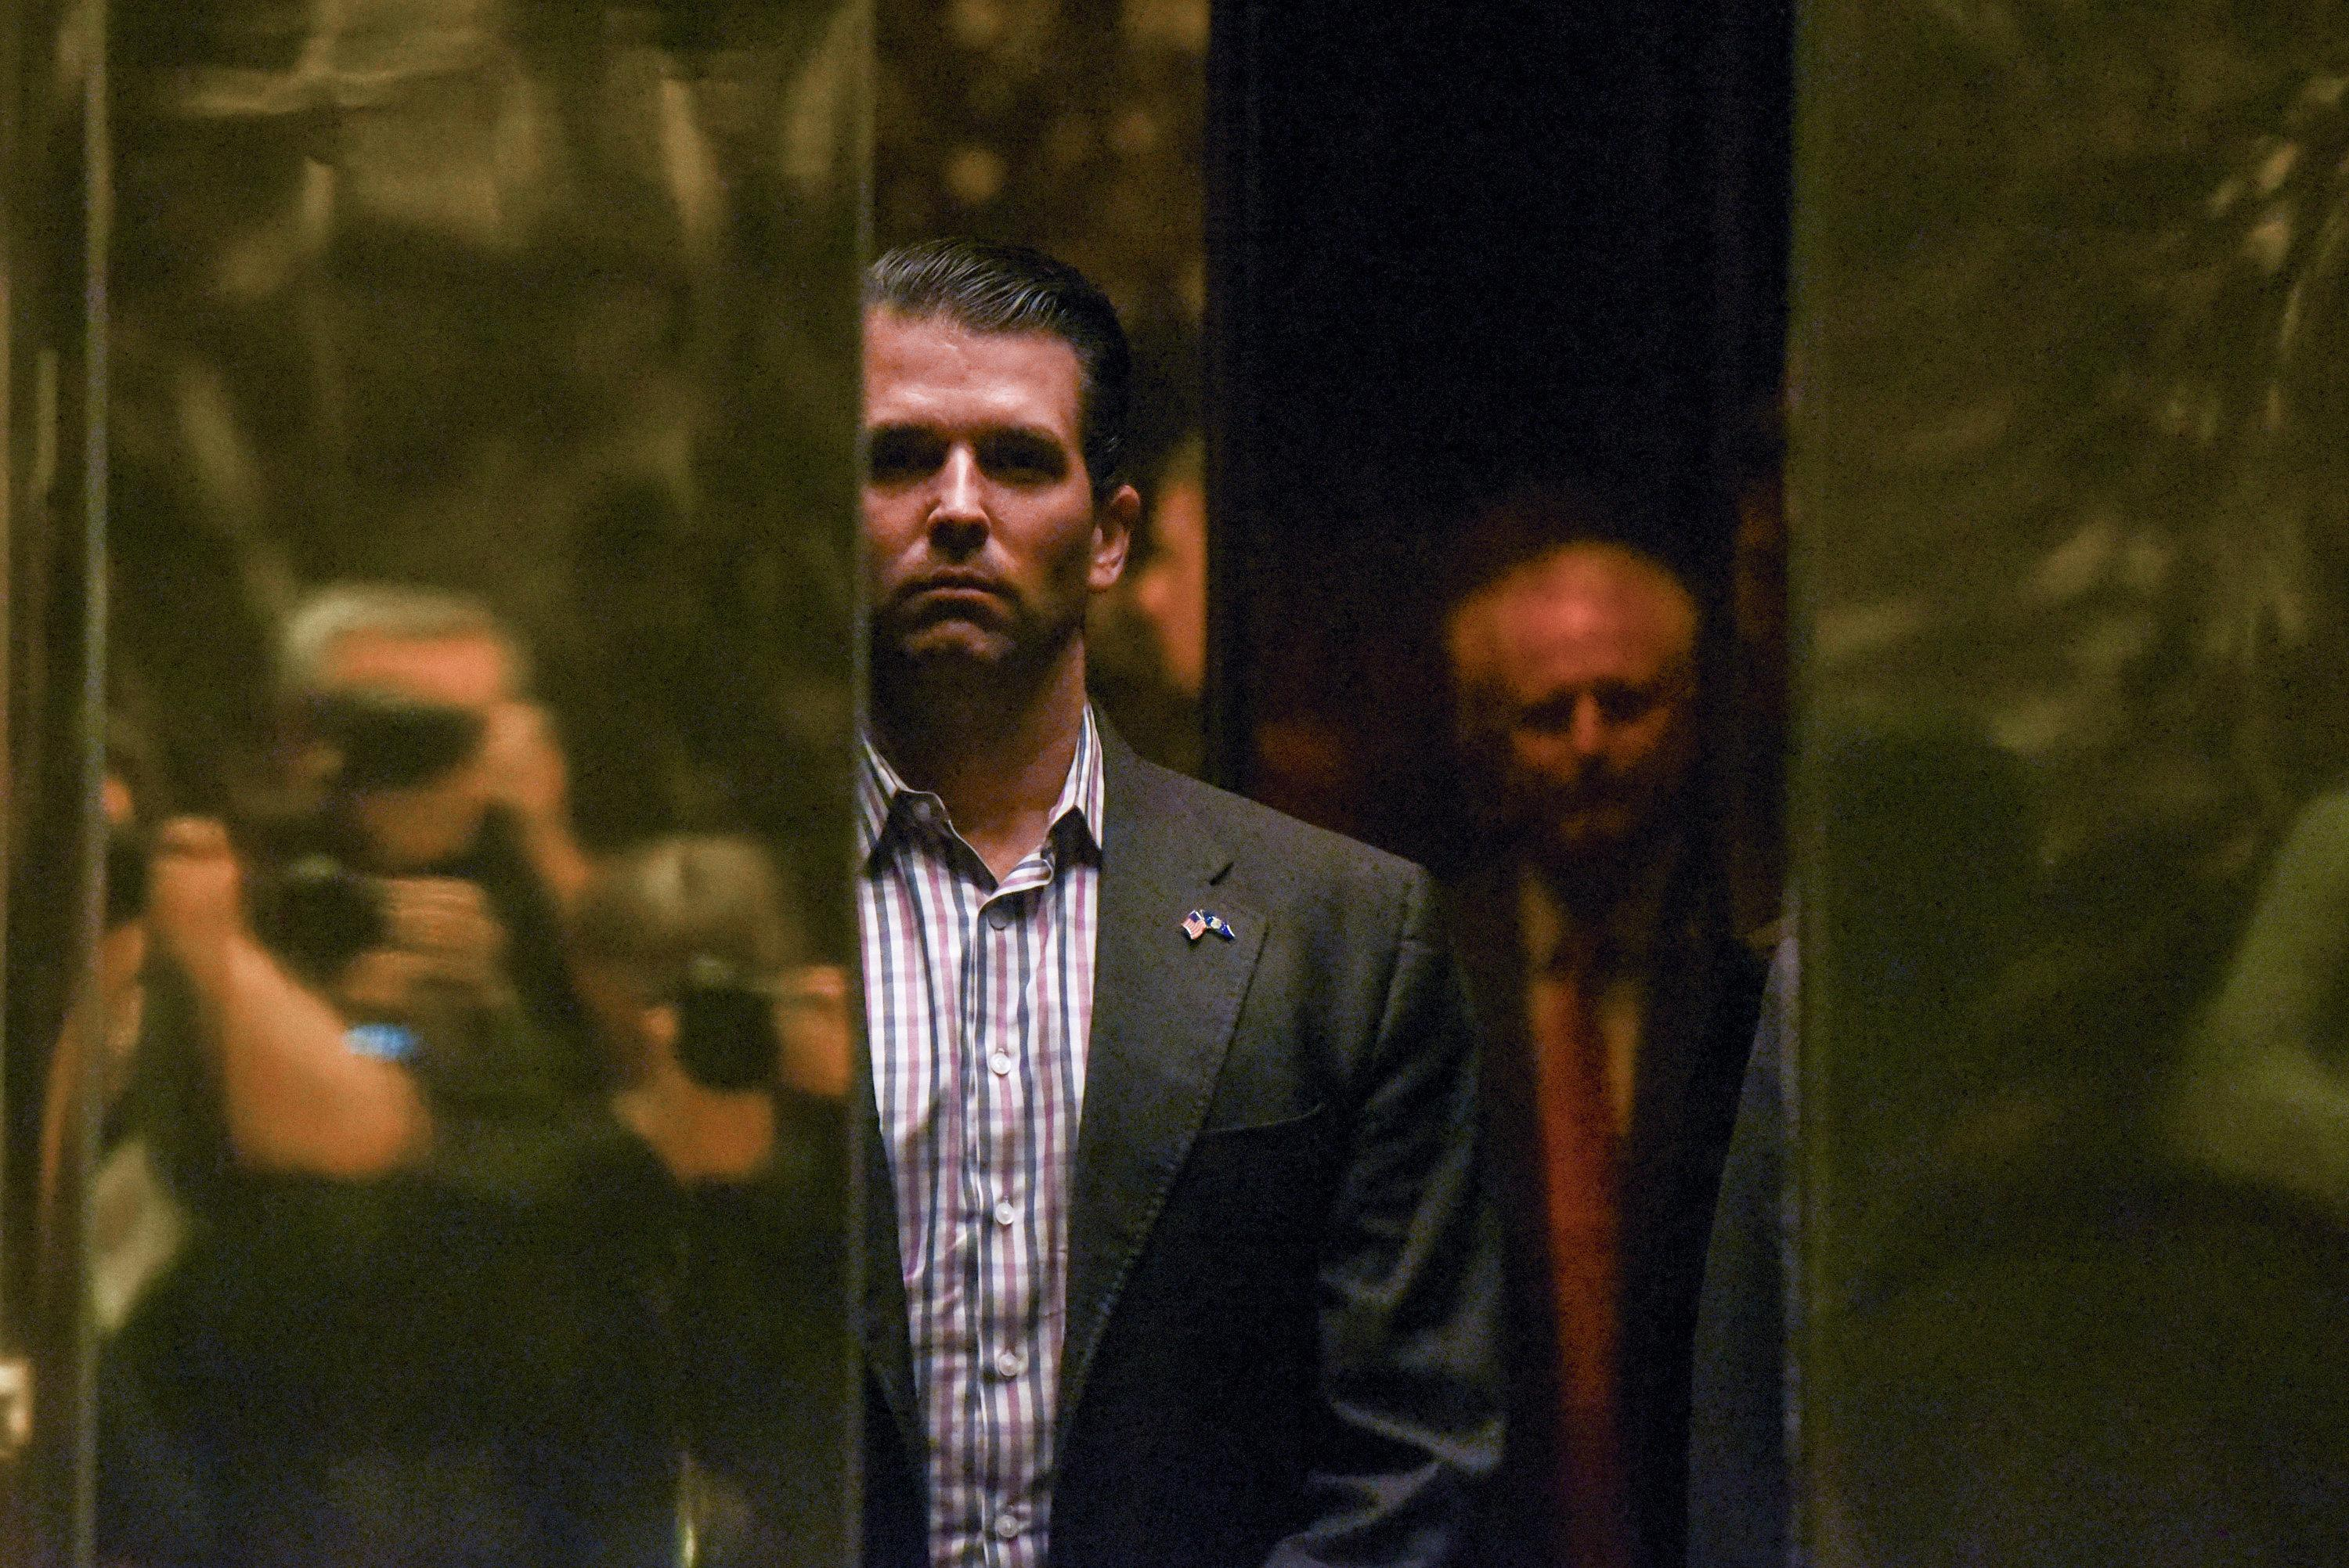 PR specialist says set up meeting between Trump's son, Russian lawyer at a client's request